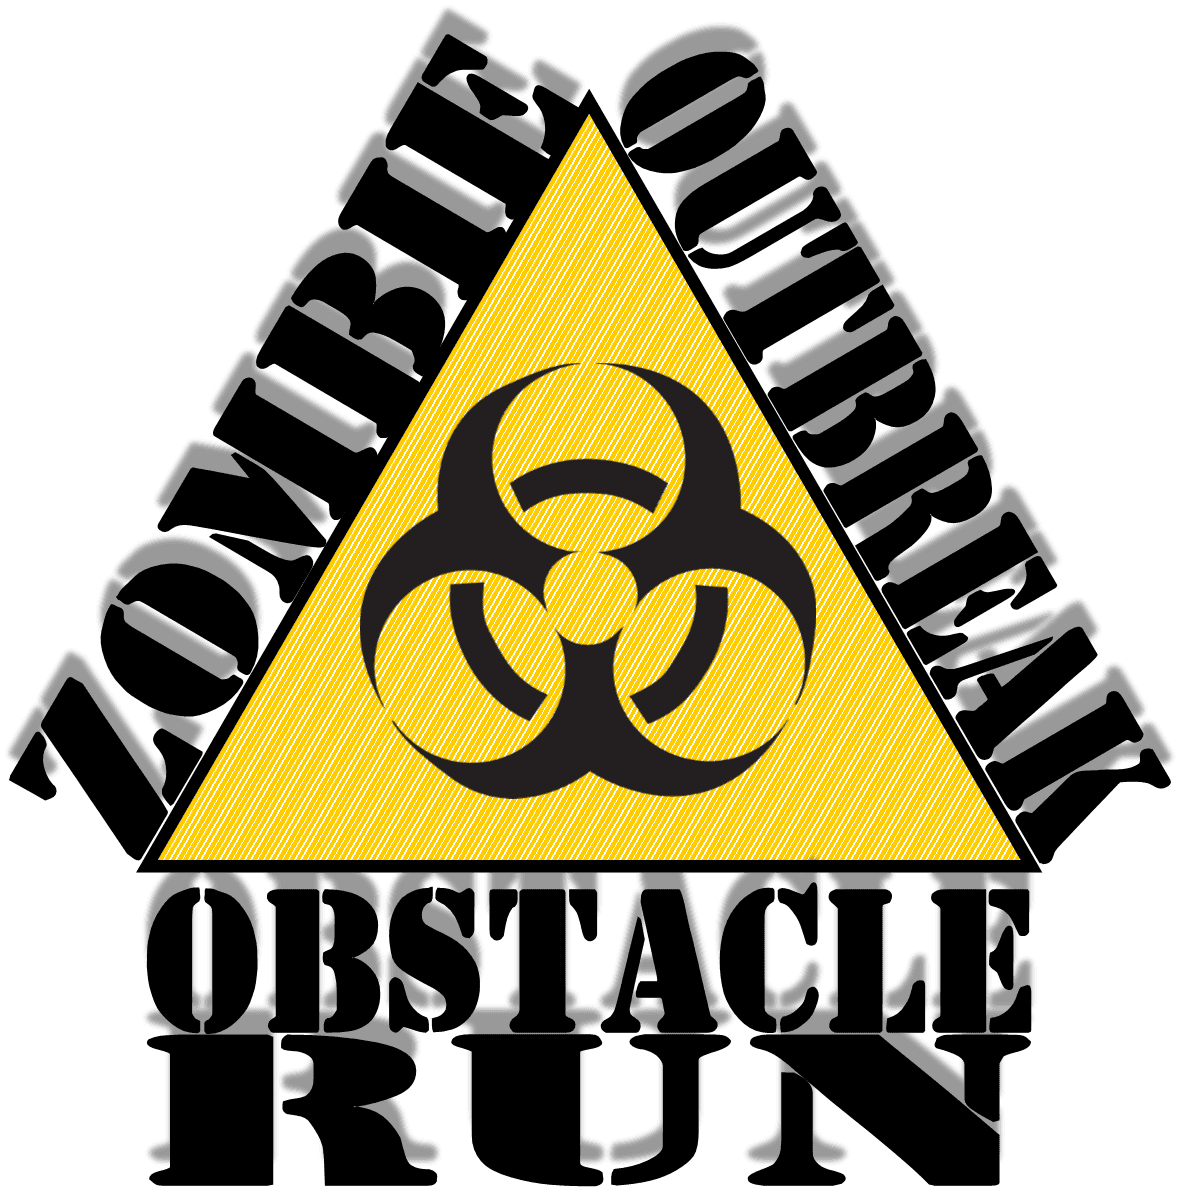 Zombie Obstacle Run Logo - Biohazard Sign surrounded by the race name.